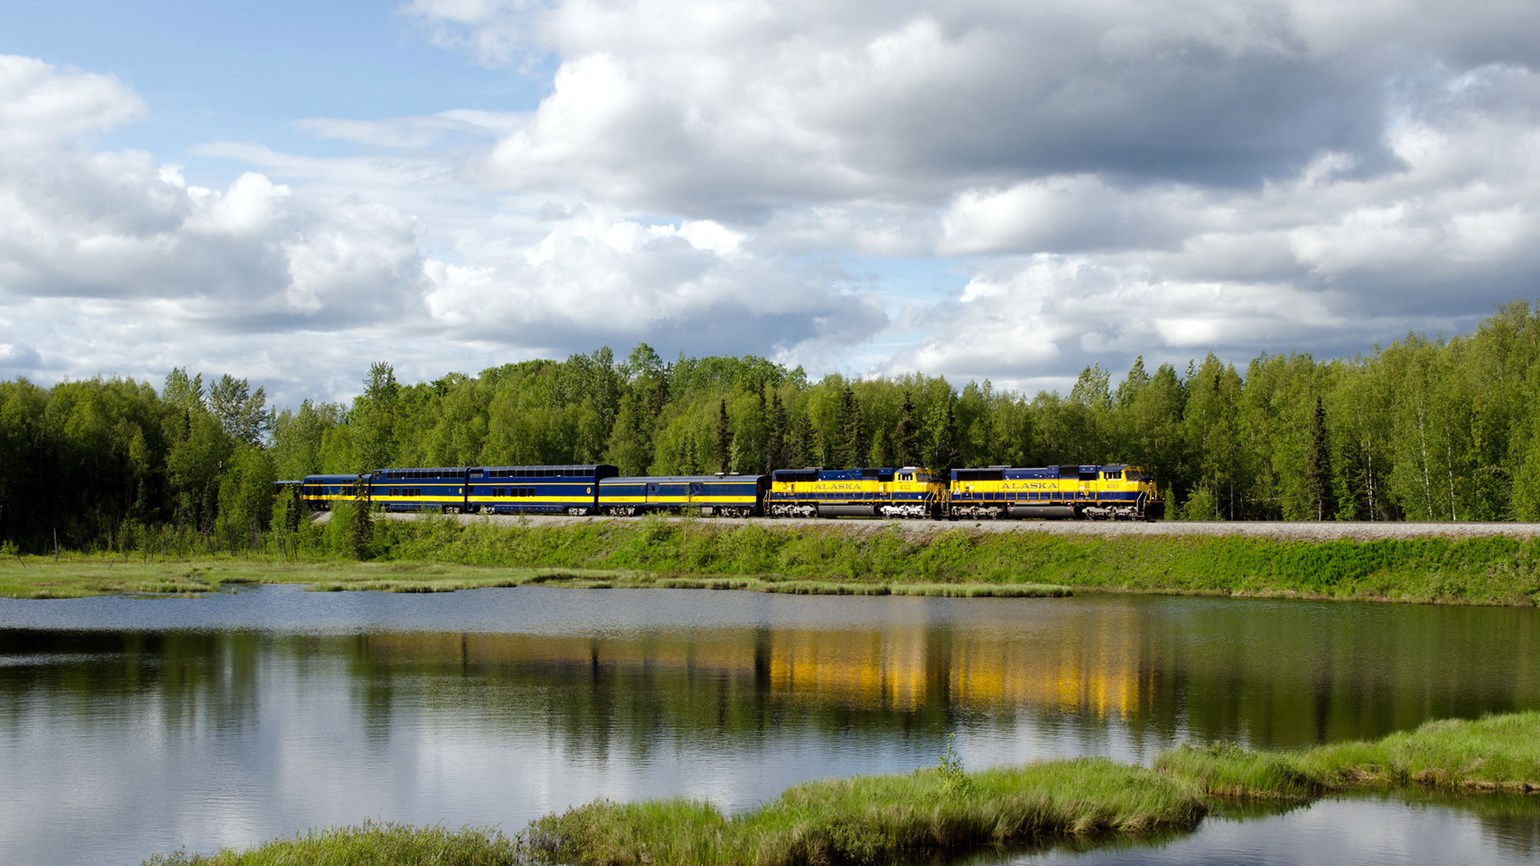 Rail and road tour highlights major Alaska destinations